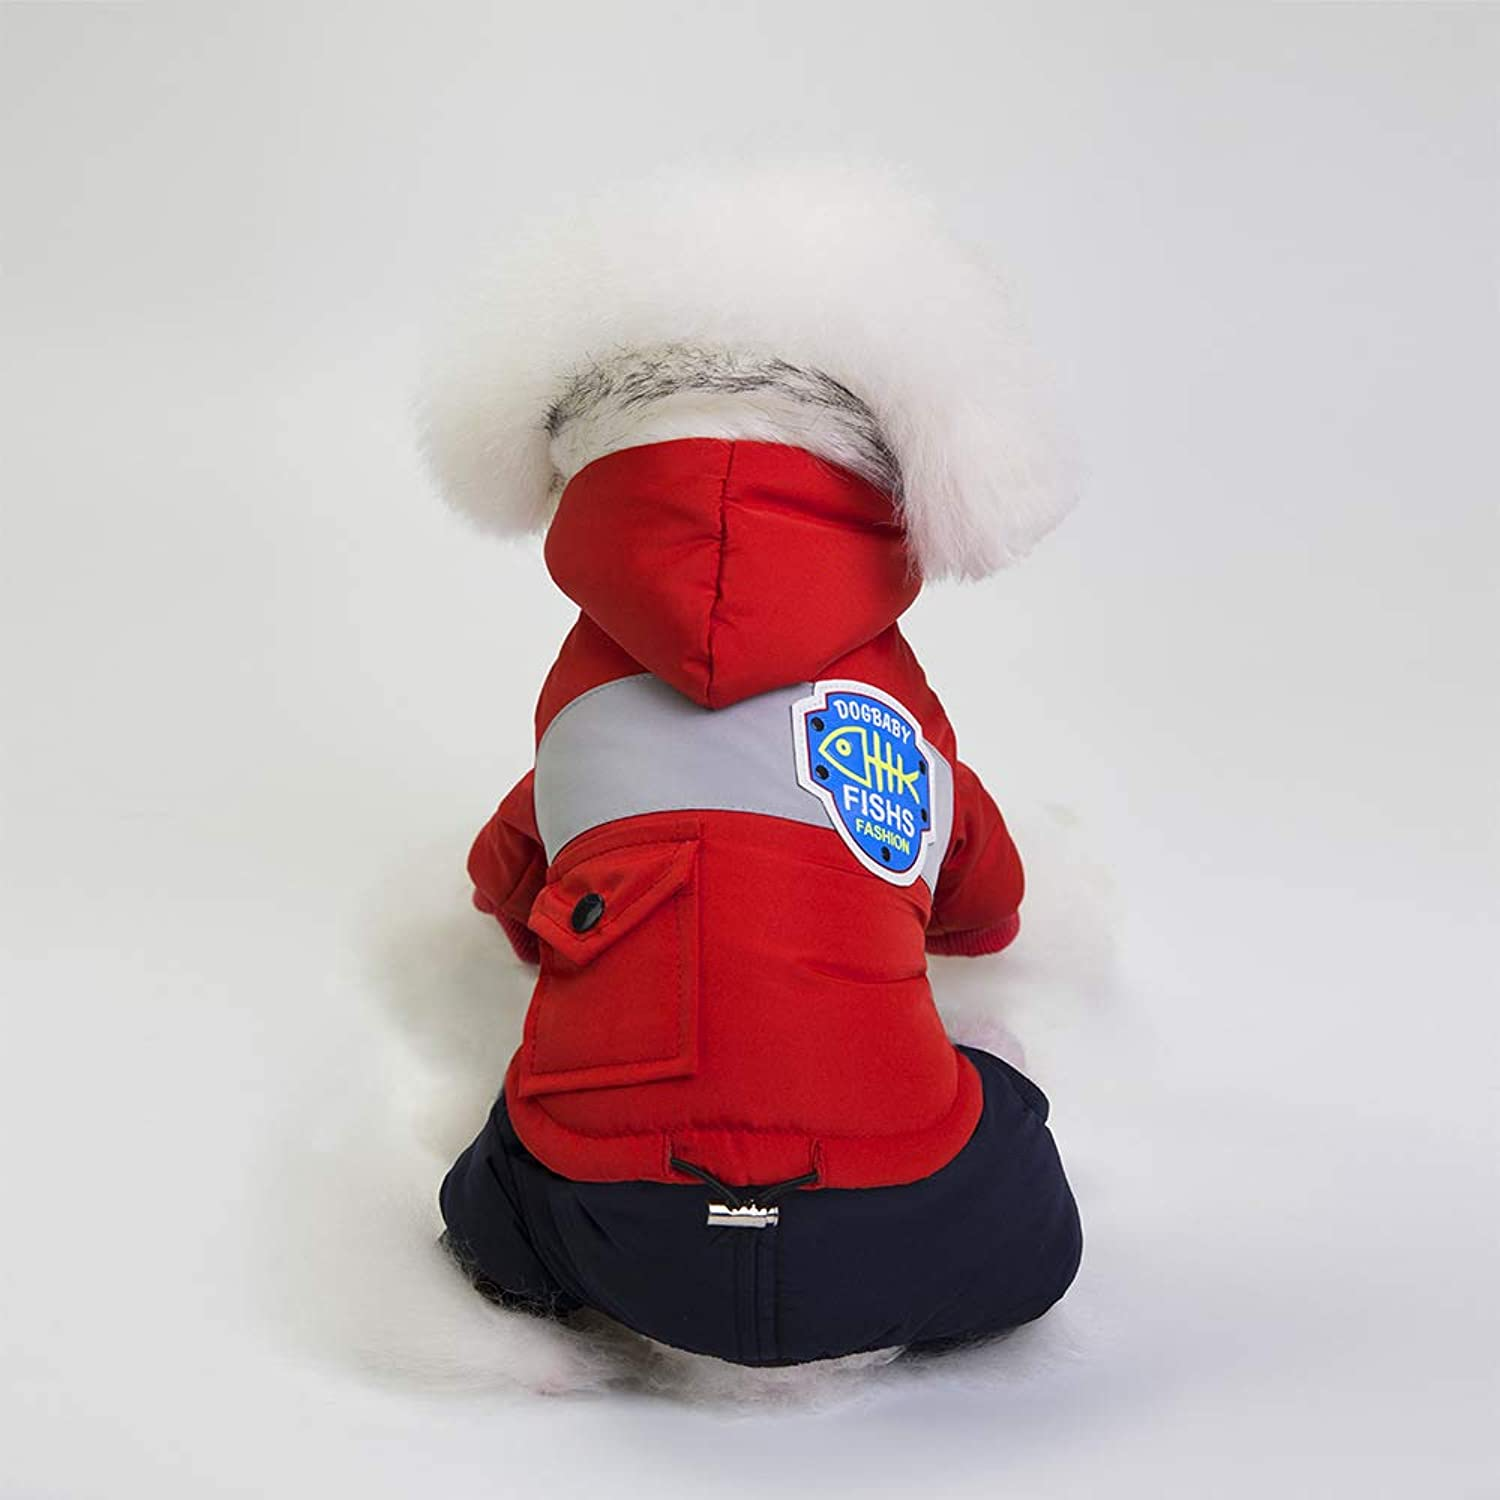 HUAIX petsuppliesmisc Autumn and winter new dog coats, pet supplies, pet clothes, autumn and winter, European and American style snow clothes (color   Red, Size   XL)